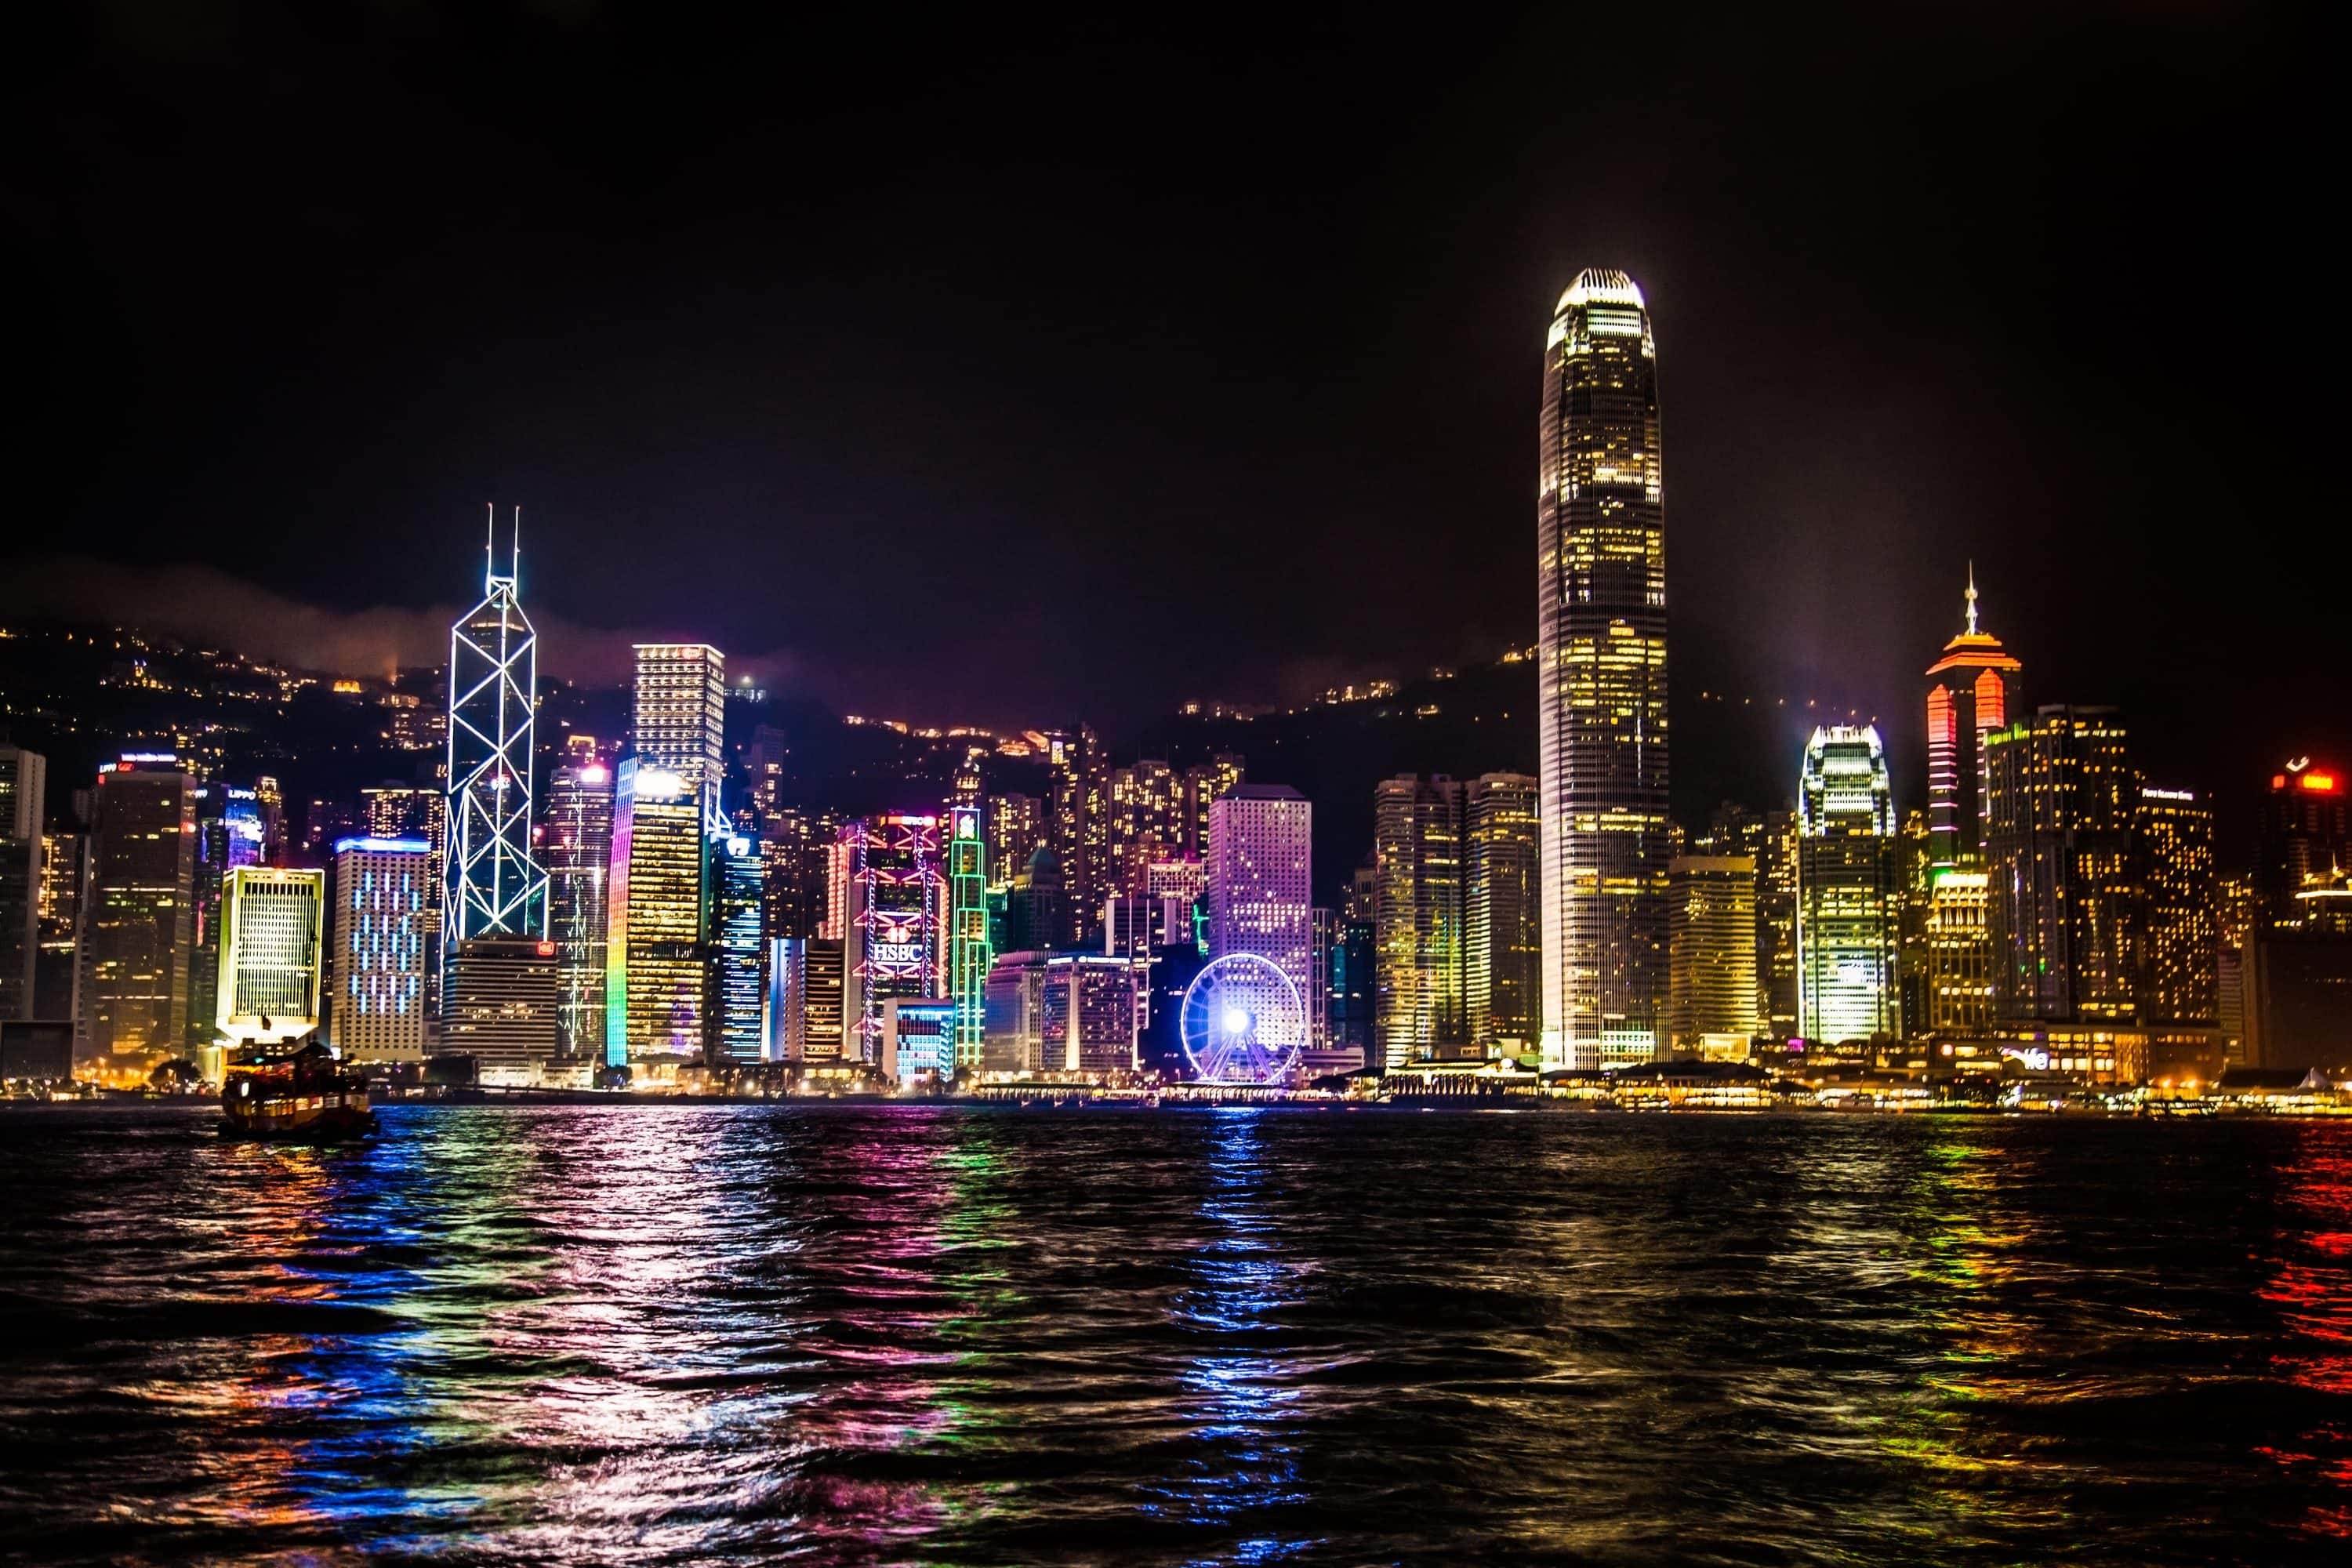 A view of the illuminated harbourfront from the water in Hong Kong